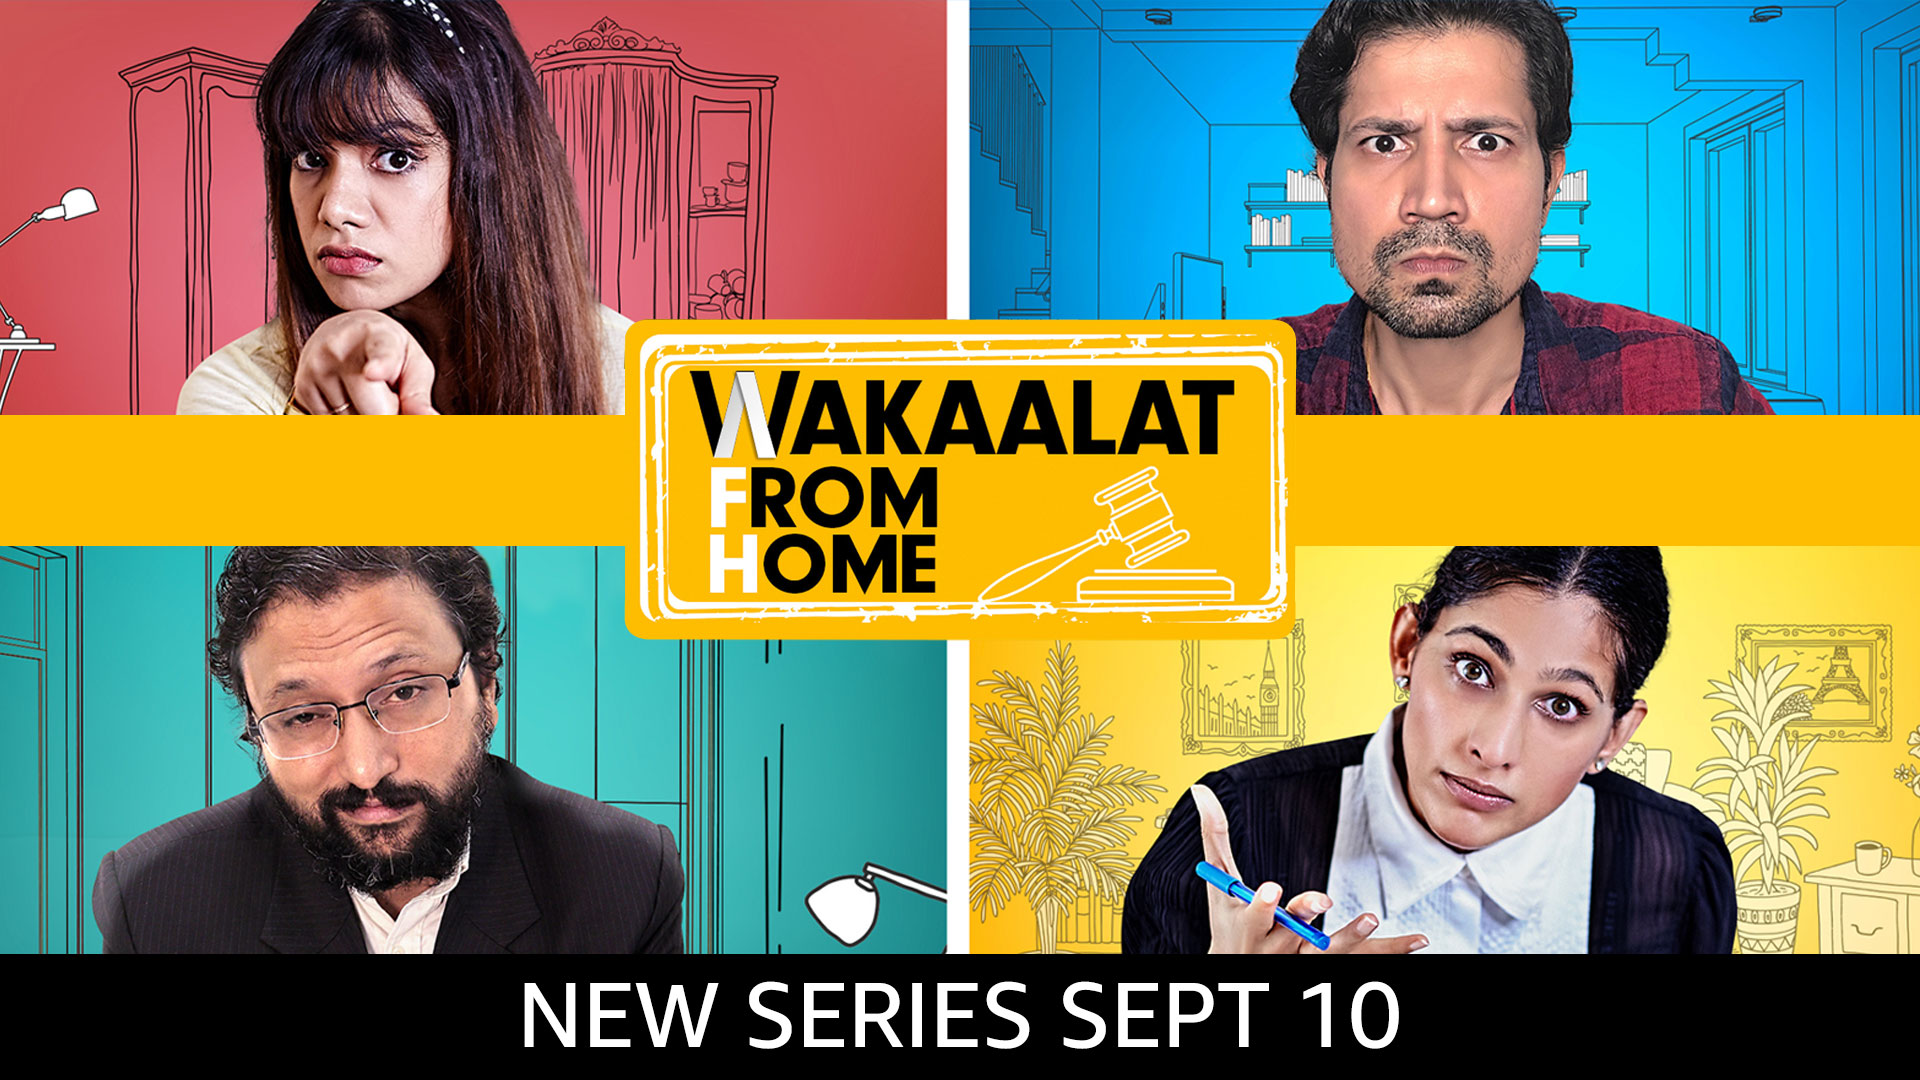 Wakaalat From Home - Season 1